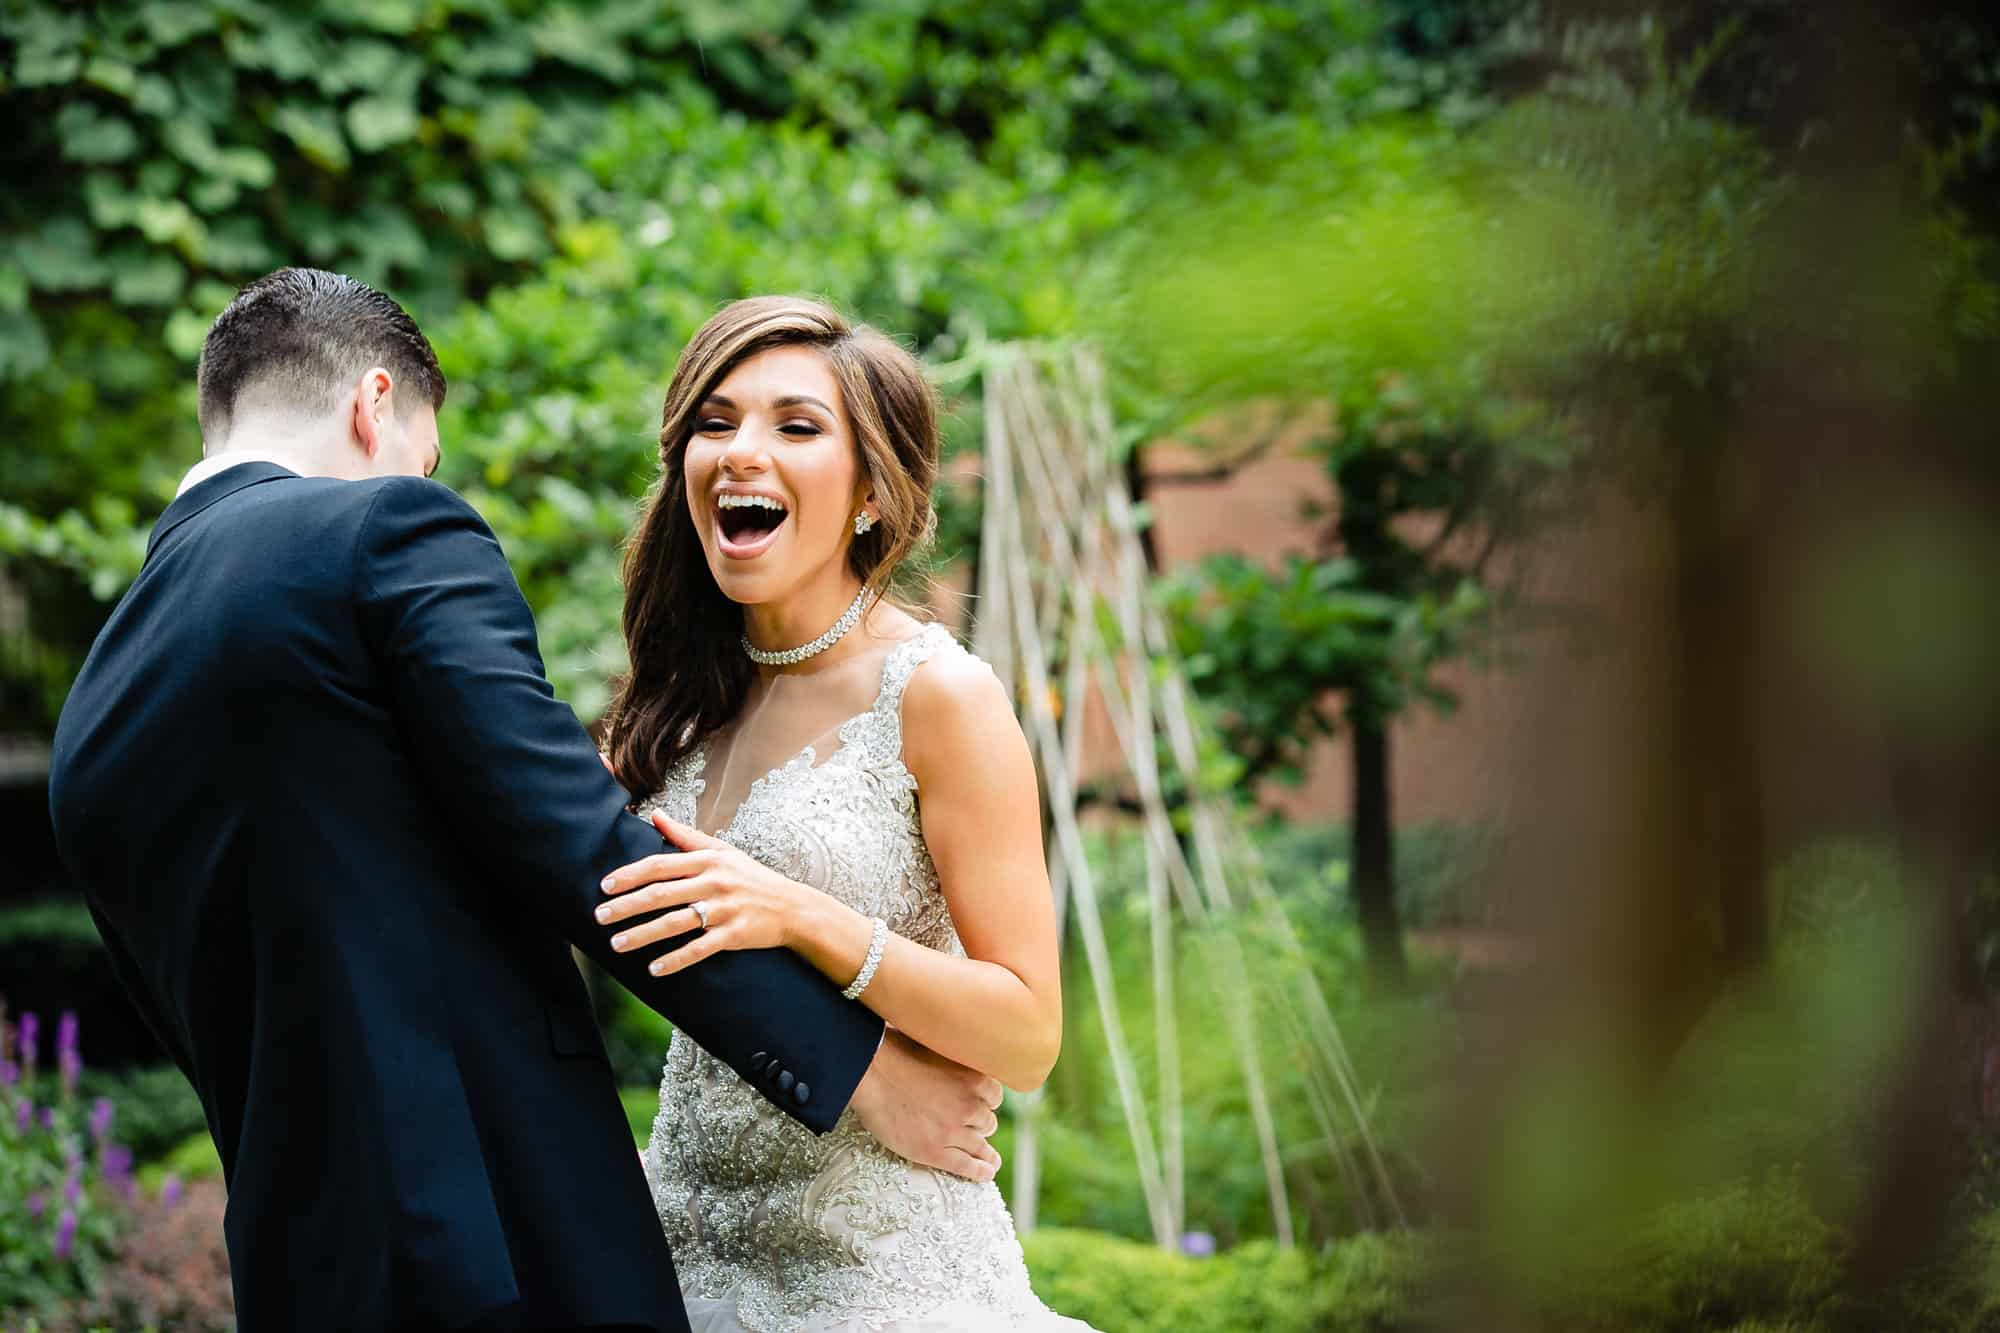 Gabriella+Nick-Tendenza Wedding-19